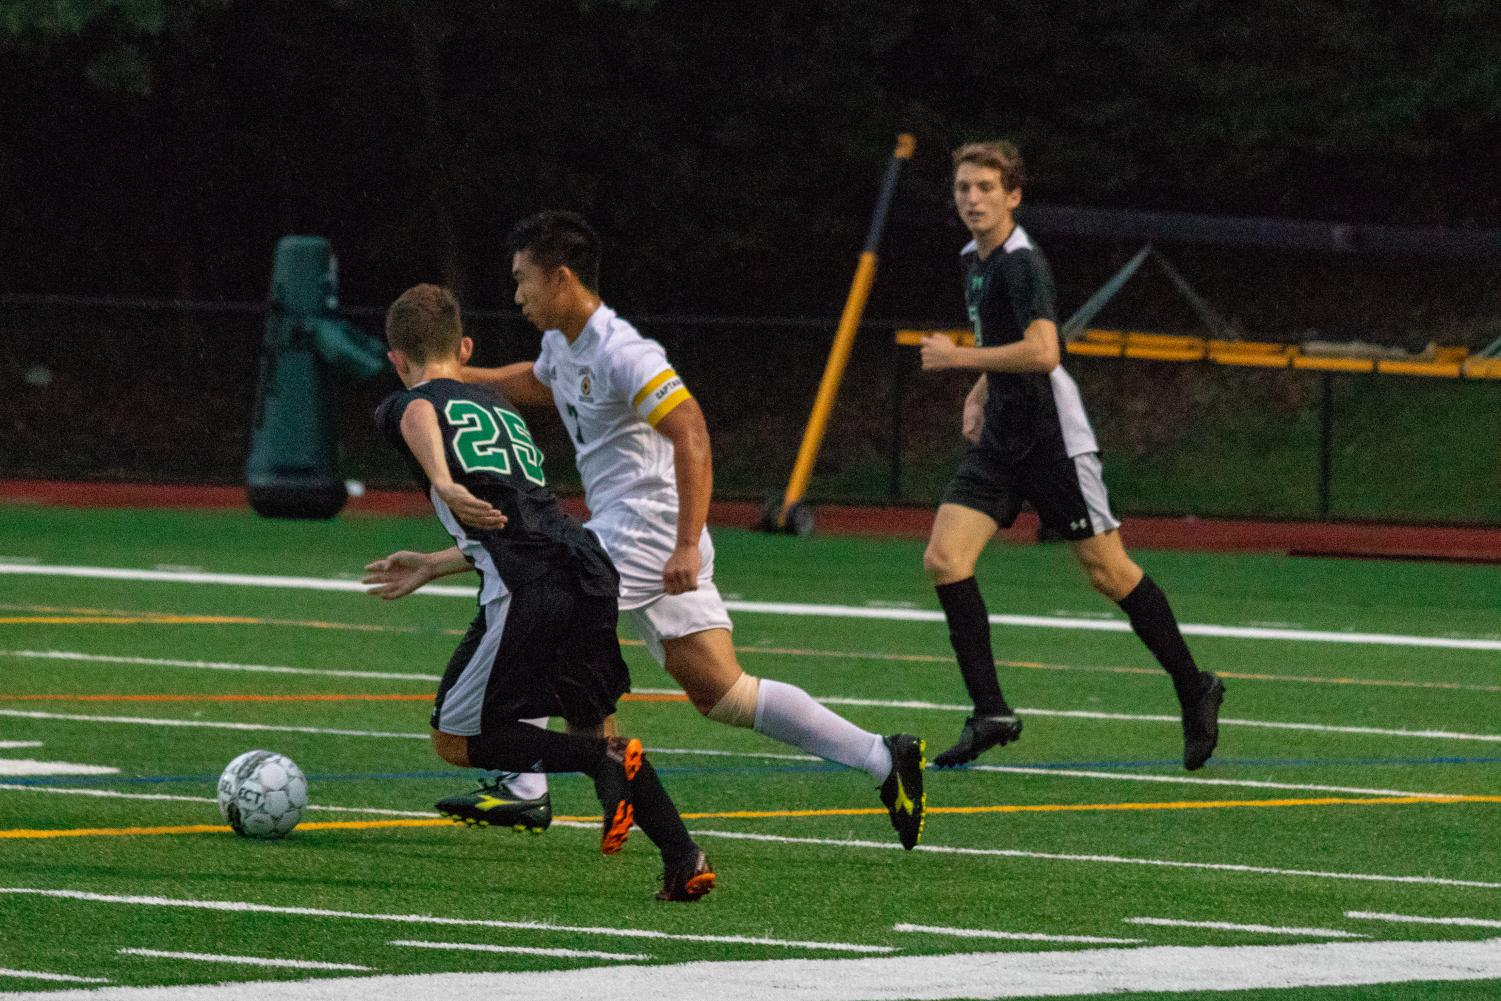 A day in the life: Boys Soccer